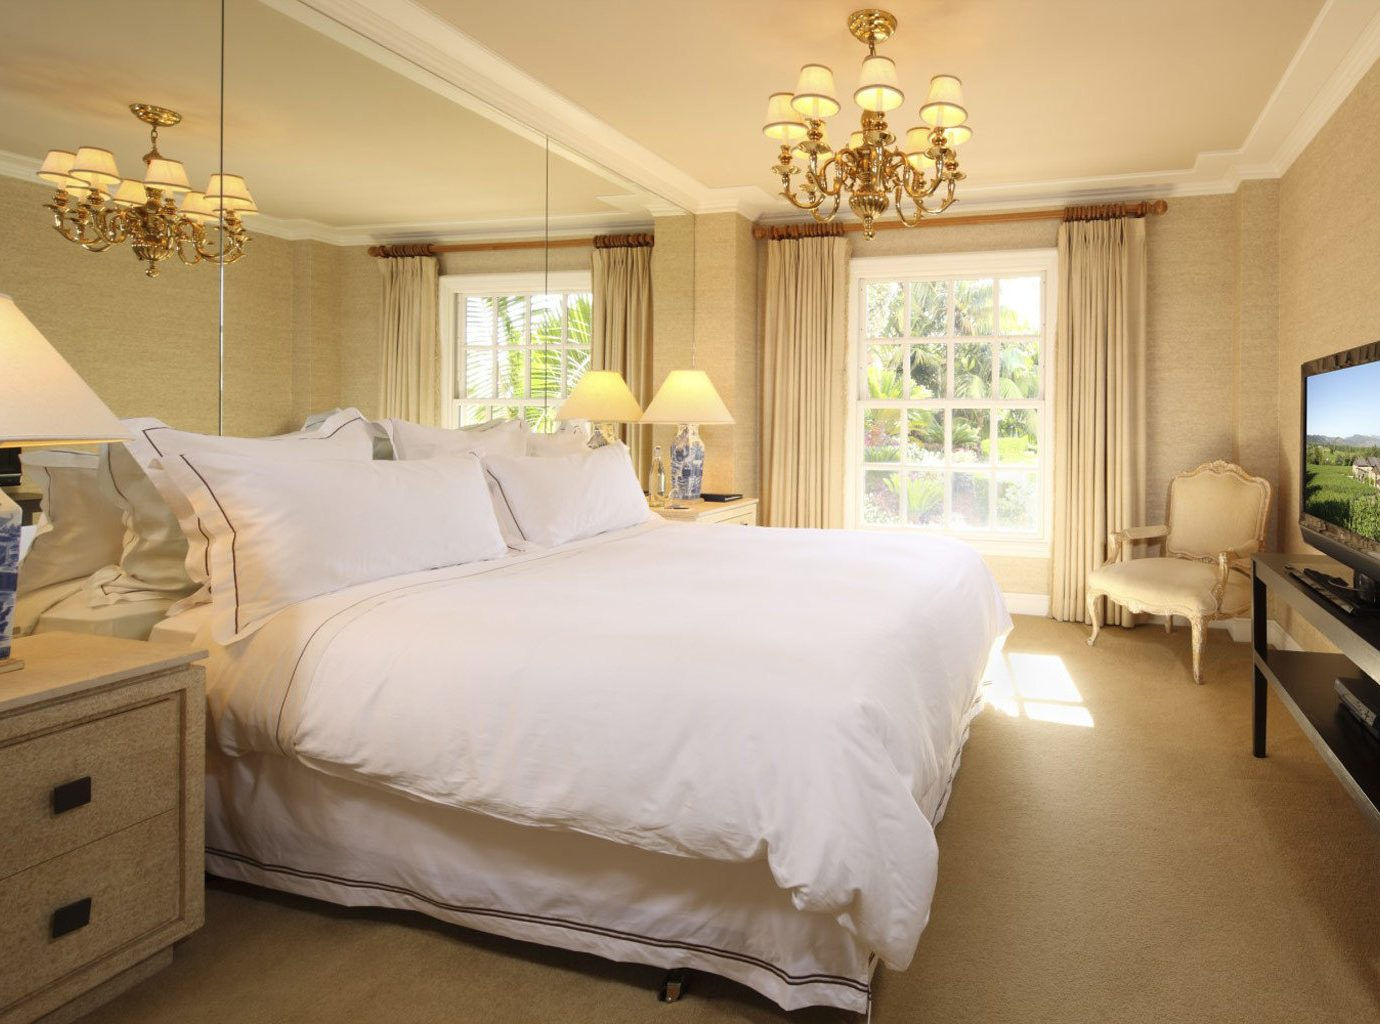 Bedroom Elegant Luxury Scenic views property Suite scene cottage home bed sheet living room